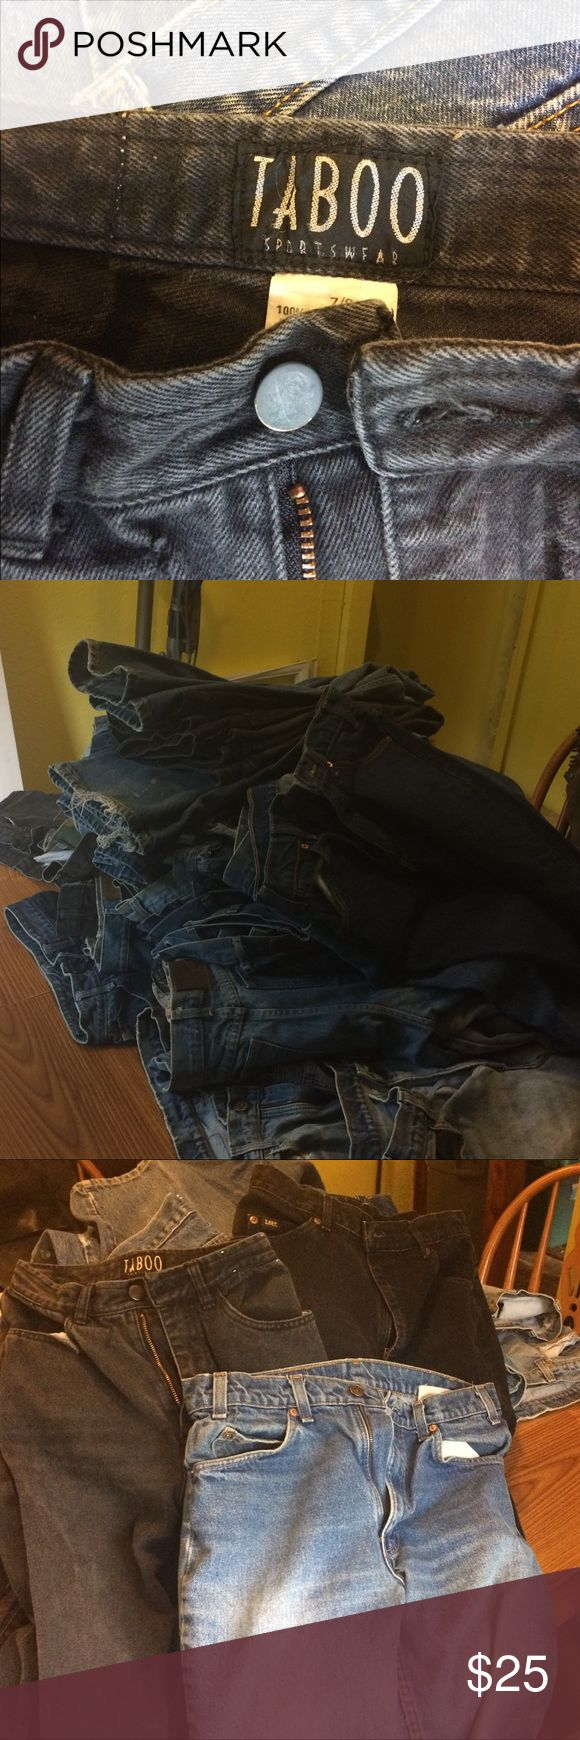 50+ pair of vintage designer jeans All in great shape      Vanderbilt  Taboo Levi's Lee Palmetto Brooks Britani Helium  And many more    Sizes 6 thru 14  buy them all and get a hell of a deal!!    Dealers welcomed !! Washed and ready to wear! Jeans